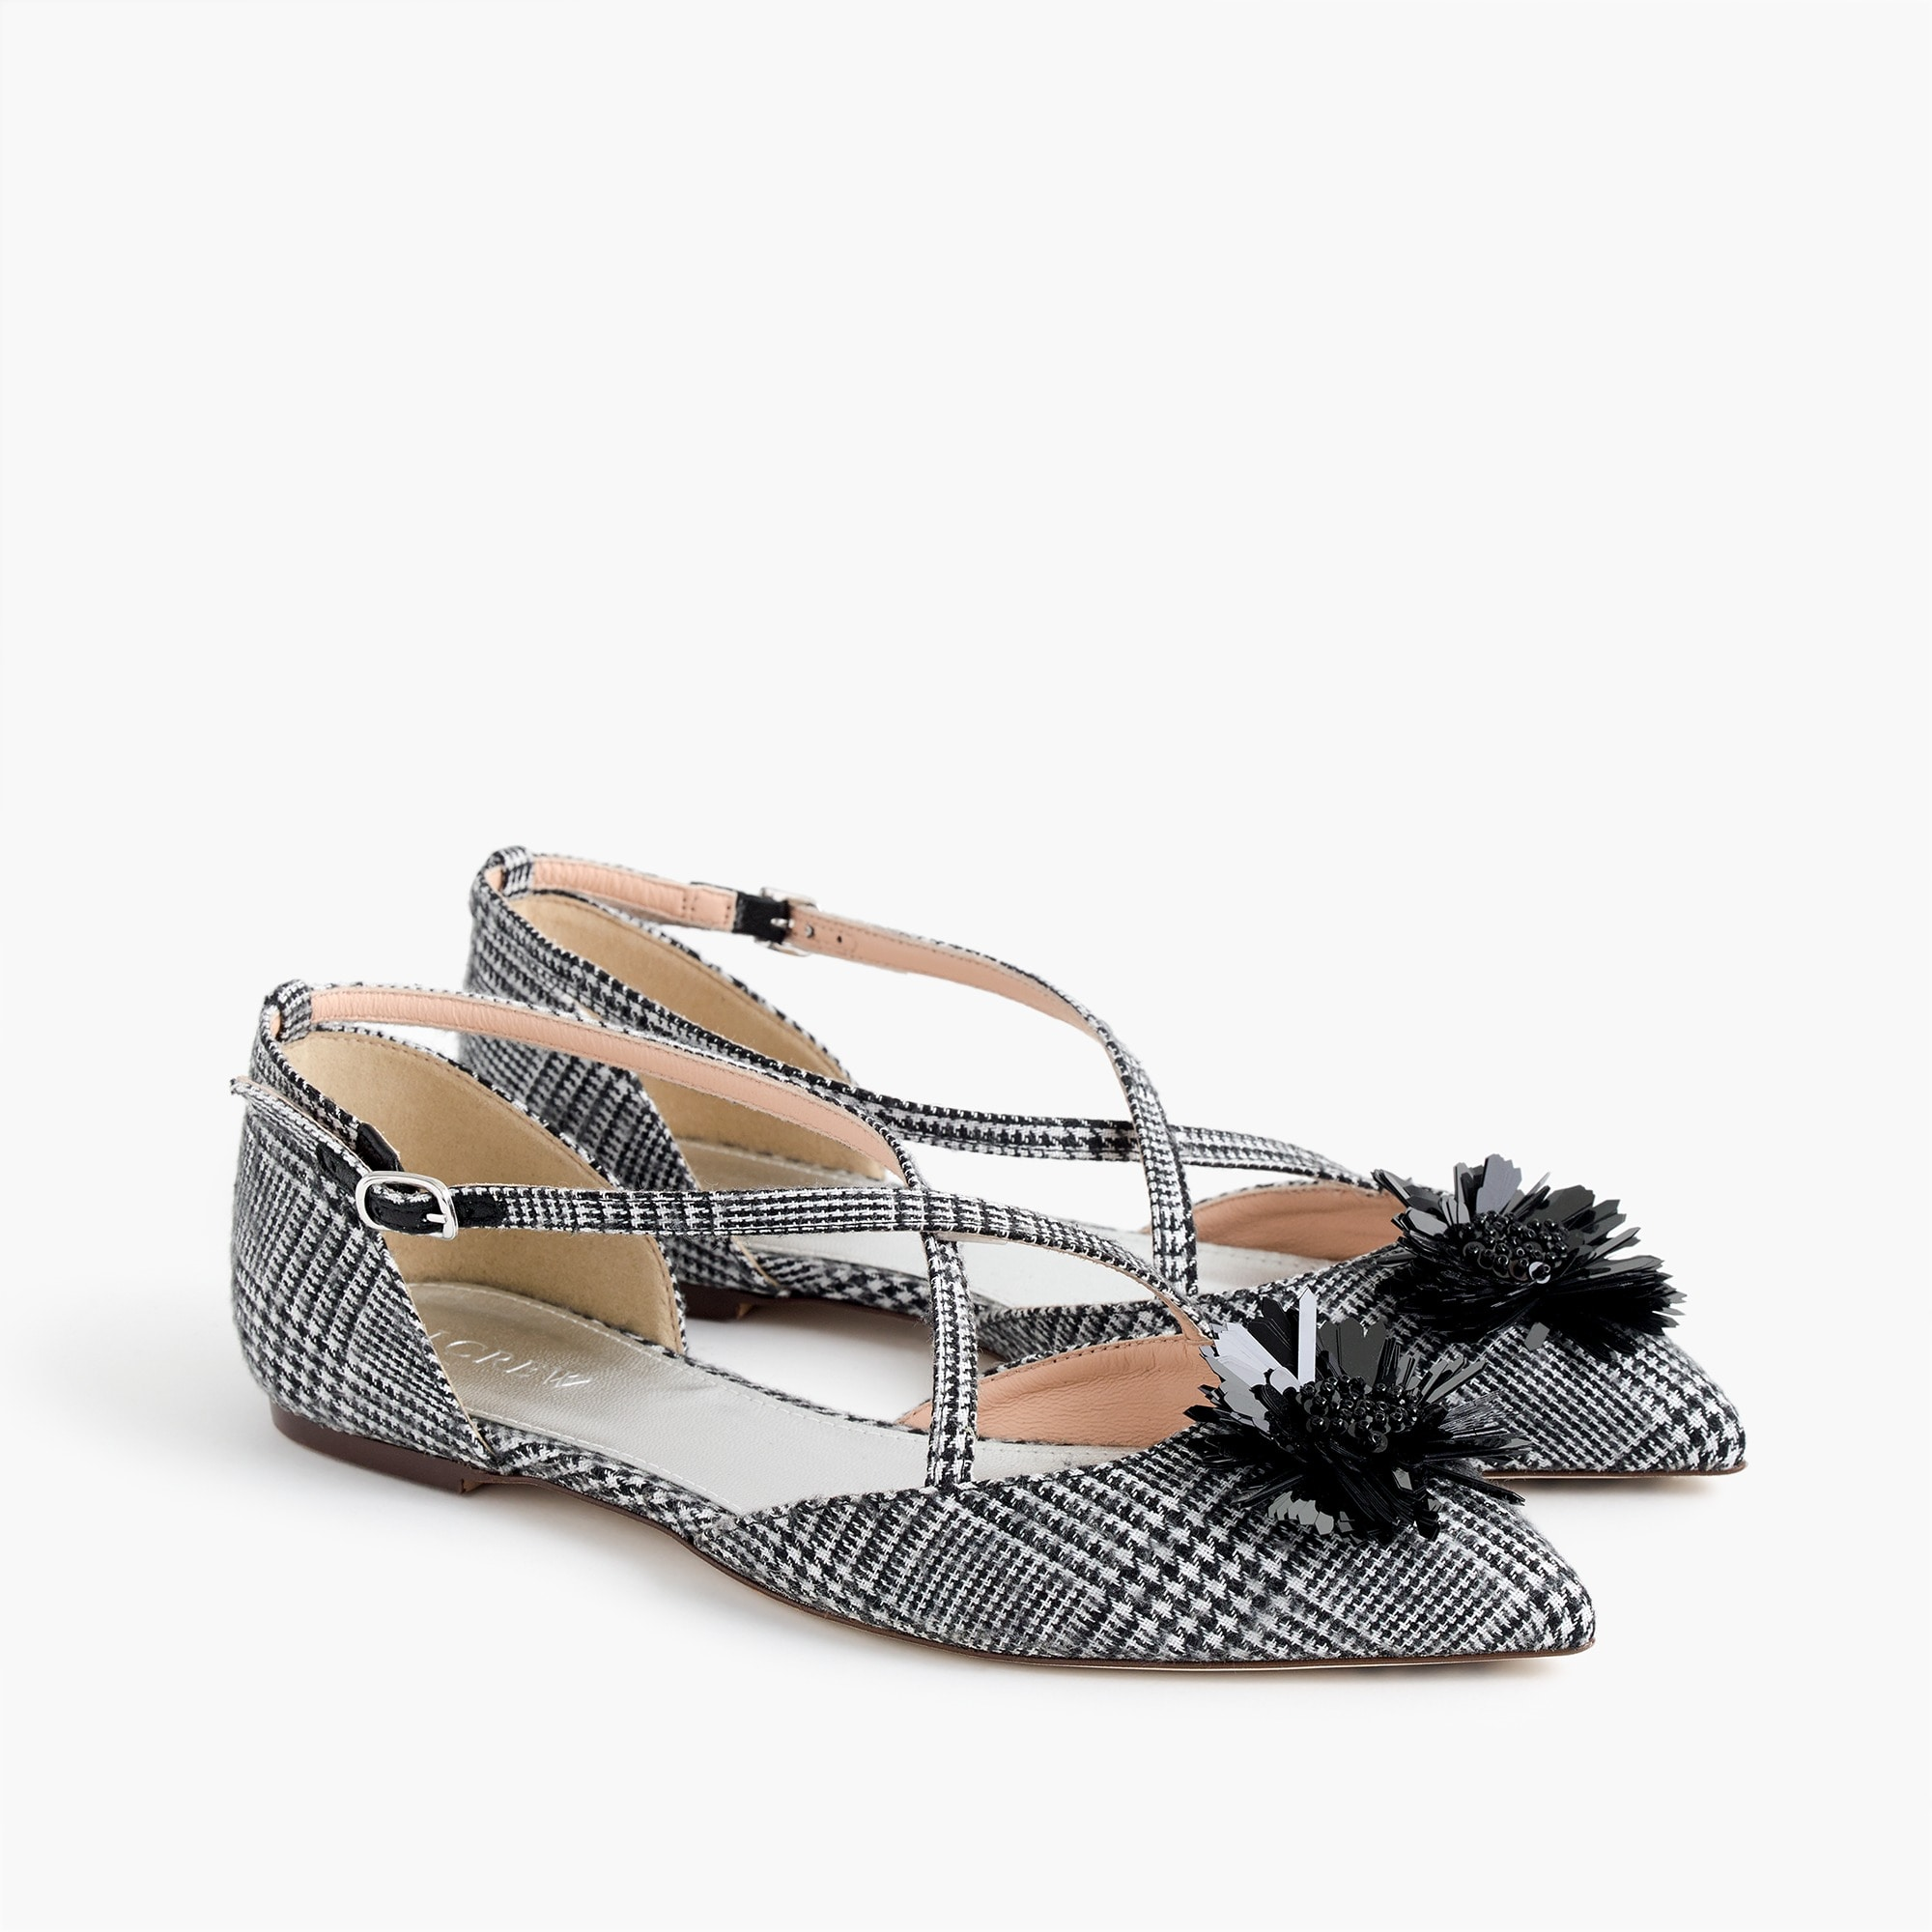 Sadie cross-strap flats in plaid